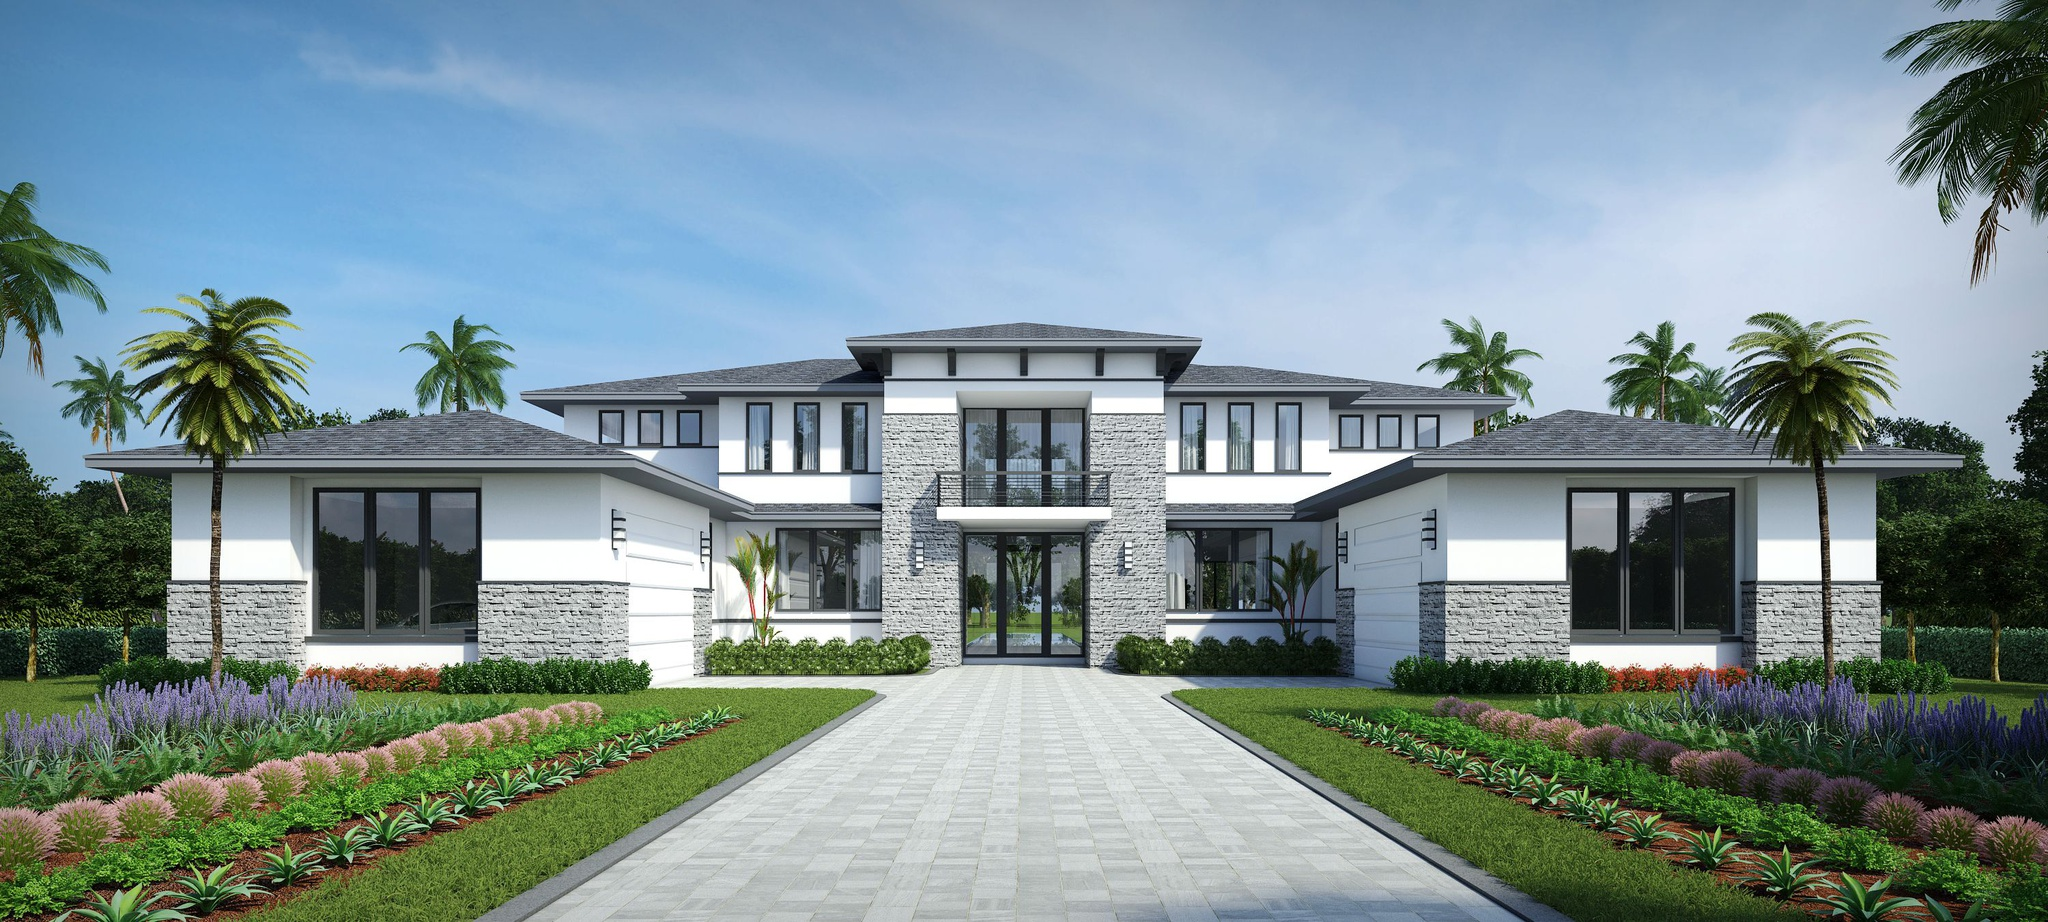 Sell Your House in Broward